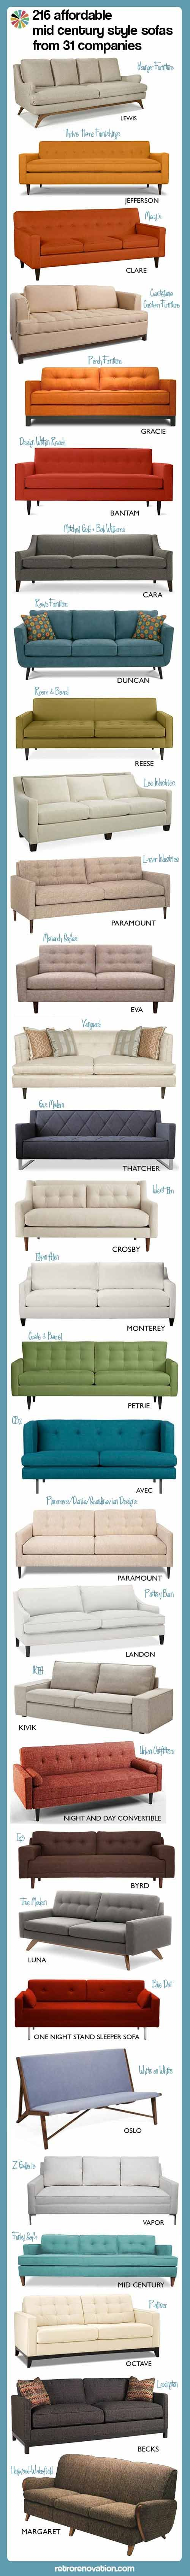 216 affordable mid century modern style sofas -- from 31 companies - Retro Renovation